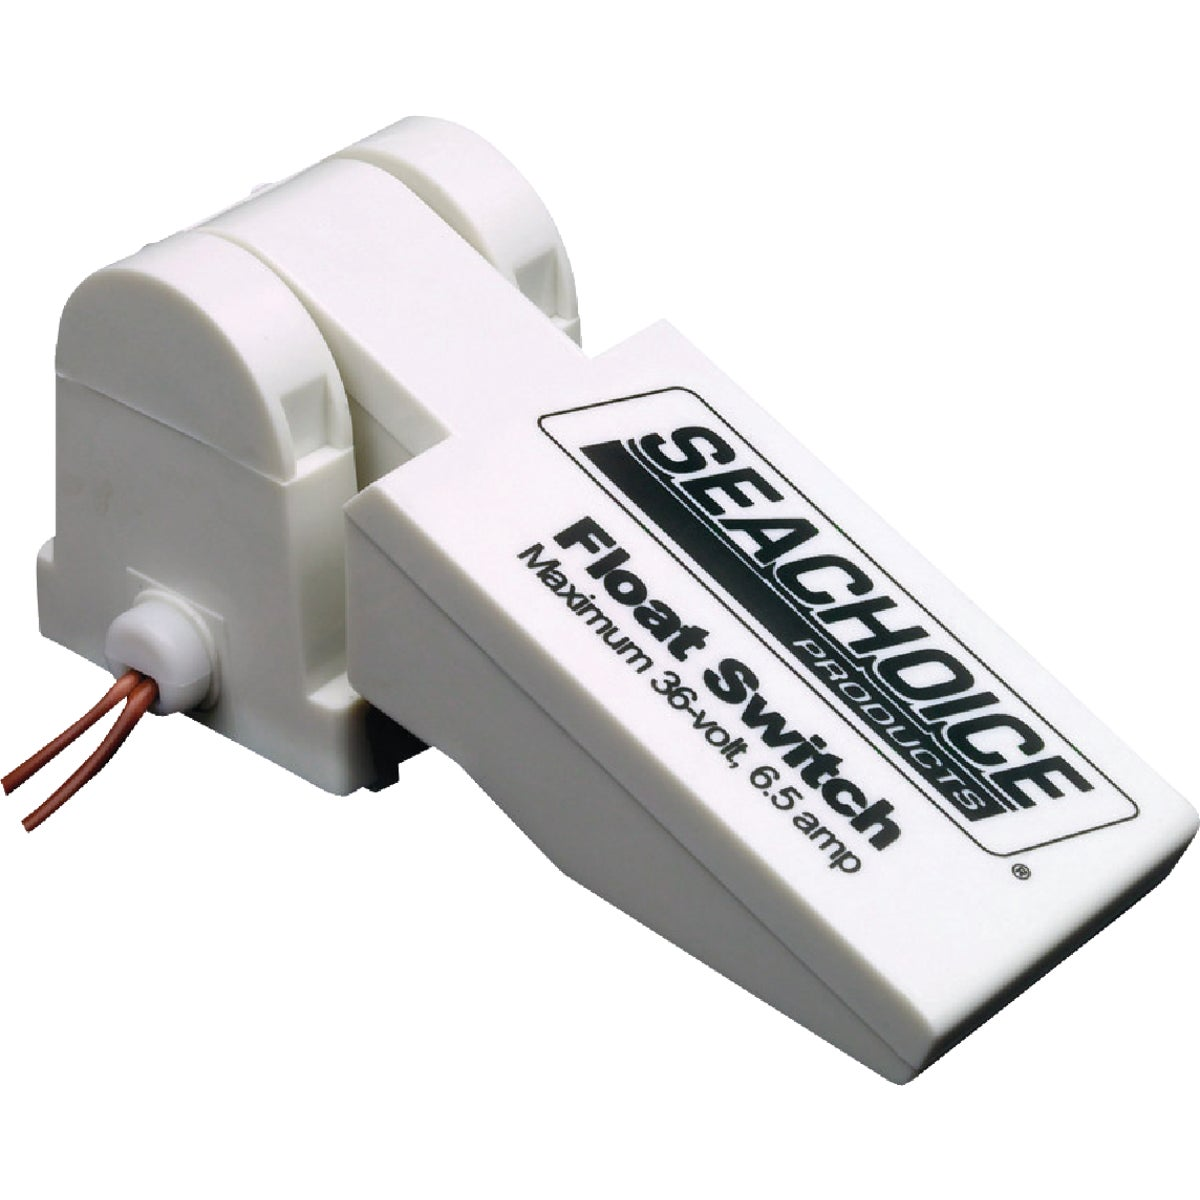 UNIVERSAL FLOAT SWITCH - 19401 by Seachoice Prod